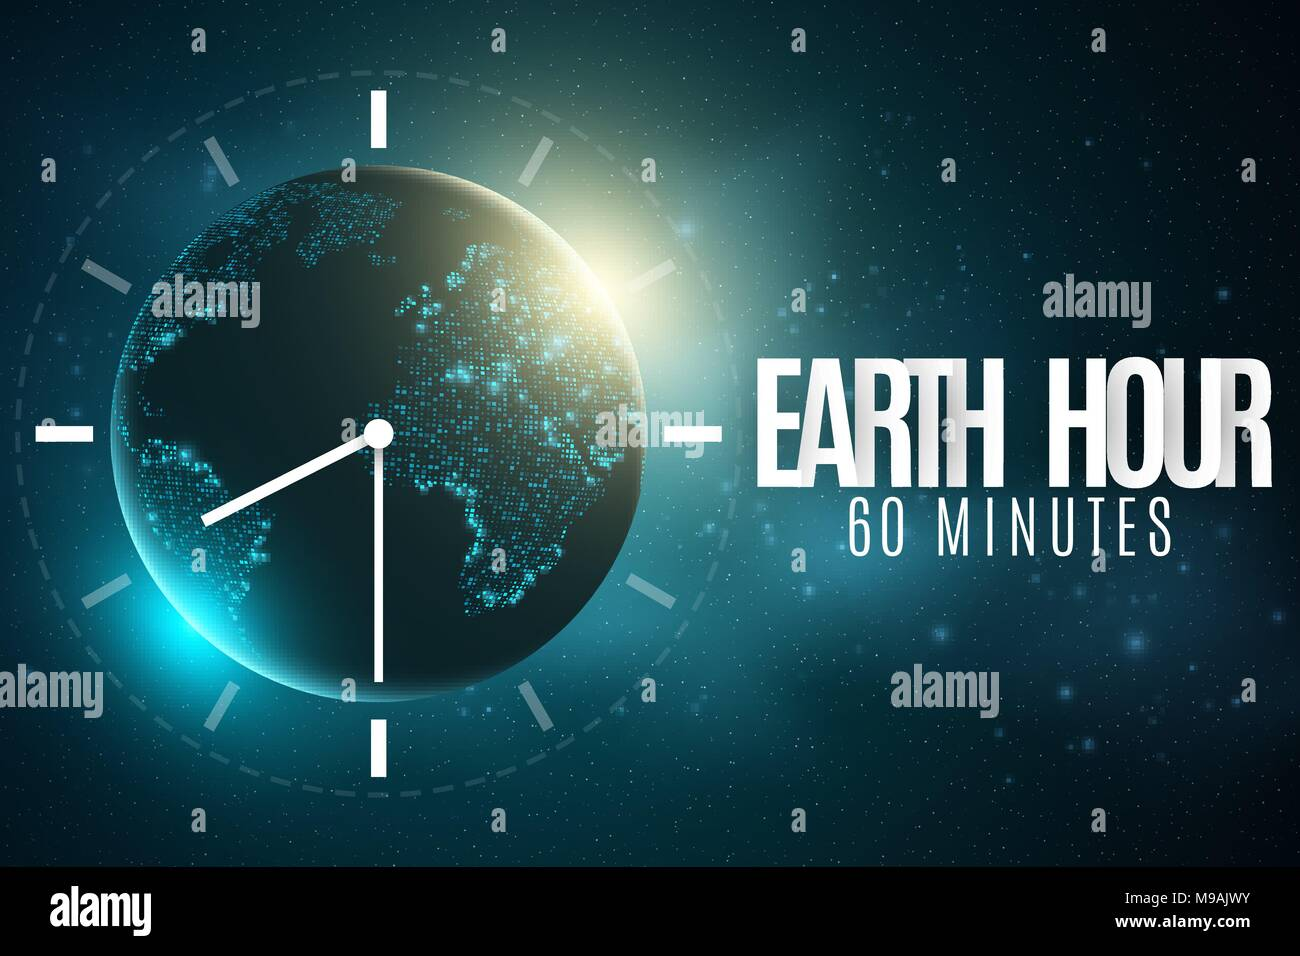 Earth hour futuristic planet earth 60 minutes without electricity earth hour futuristic planet earth 60 minutes without electricity 3d paper letters sunrise global holiday clock go abstract world map starry s gumiabroncs Choice Image